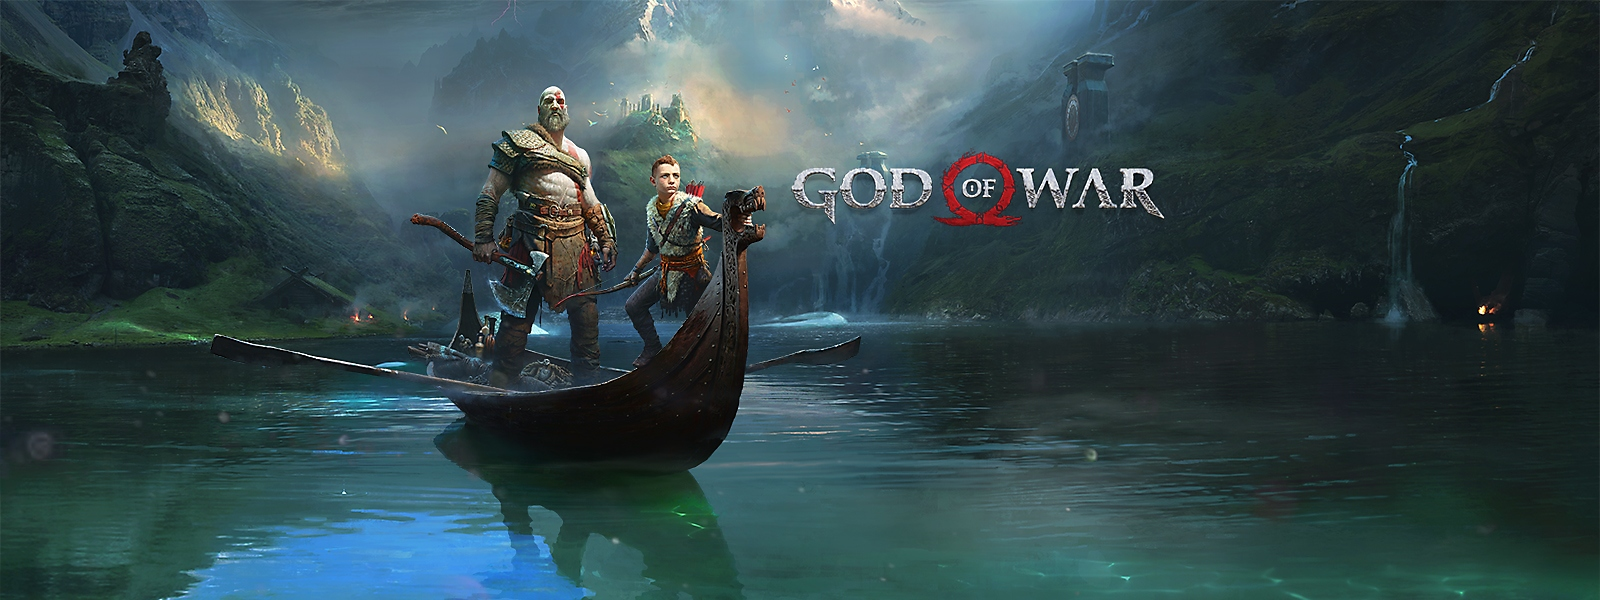 god of war – герой